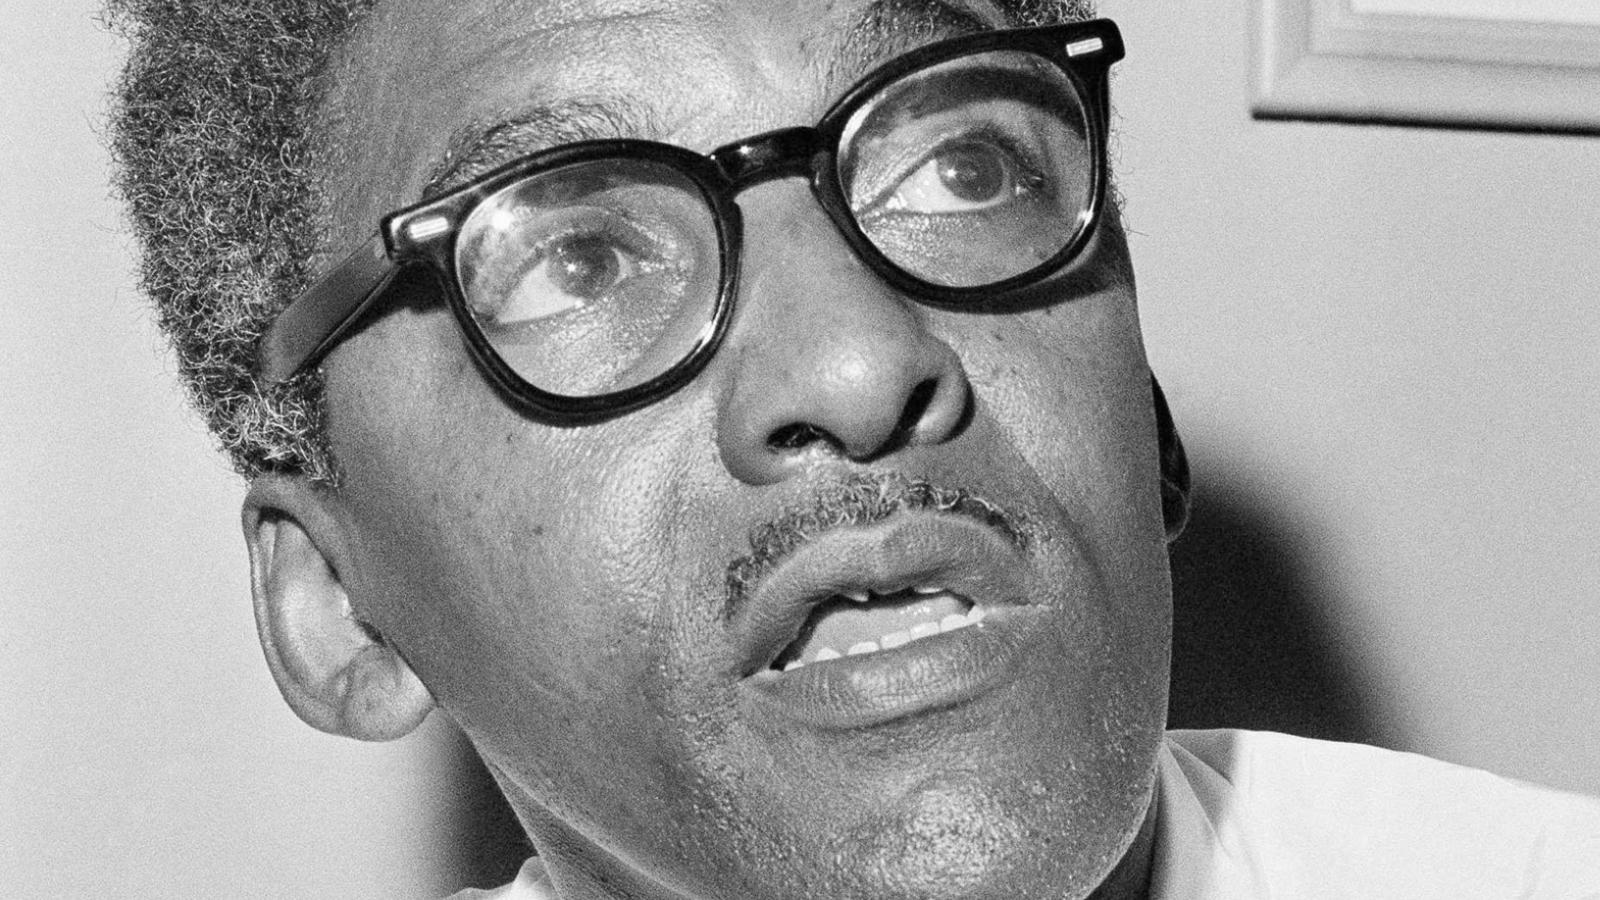 Bayard Rustin Image: Getty Images